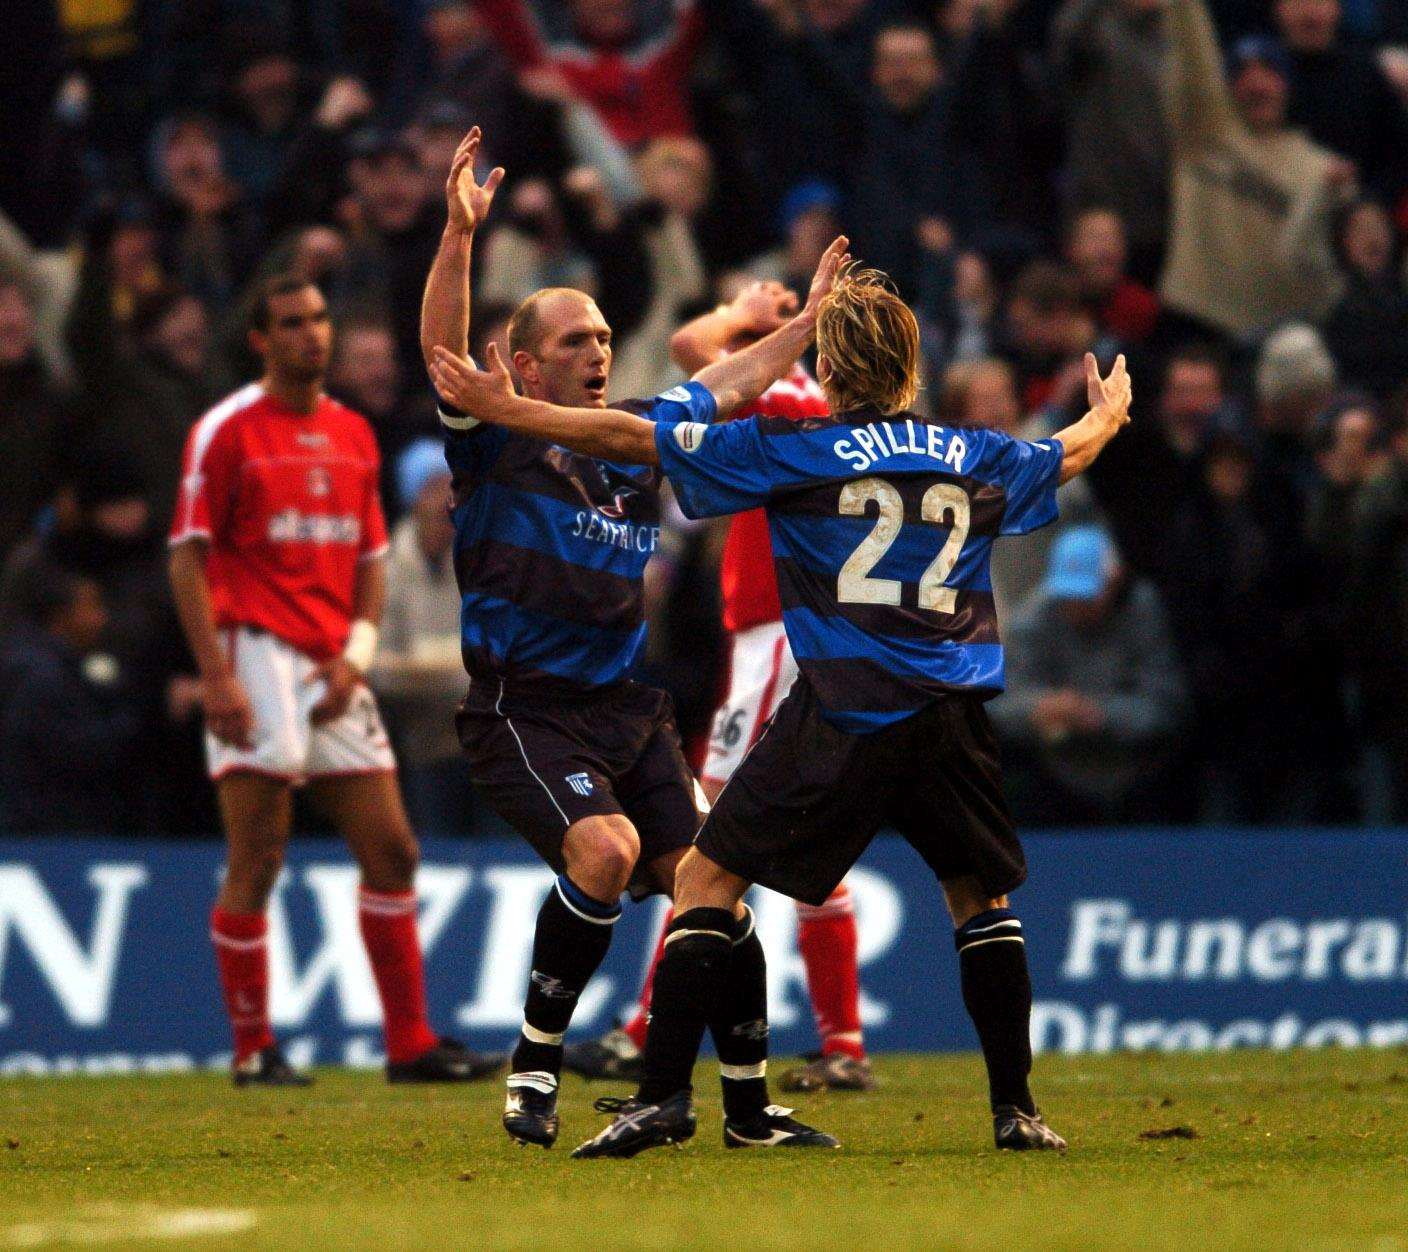 Gillingham knock-out Premiership Charlton in a 3-2 FA Cup victory in 2004